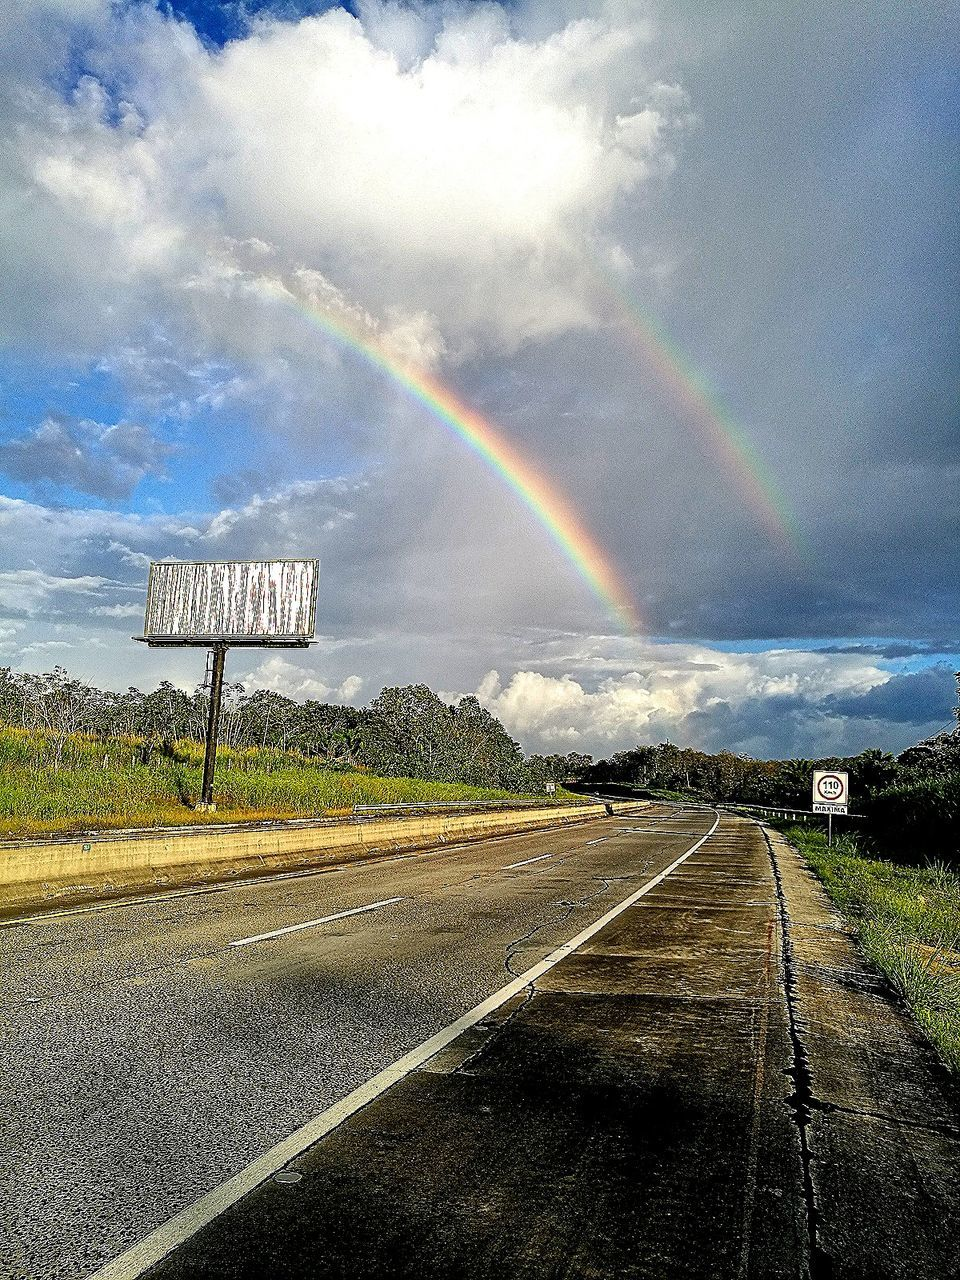 rainbow, road, cloud - sky, sky, transportation, double rainbow, the way forward, day, outdoors, no people, scenics, nature, beauty in nature